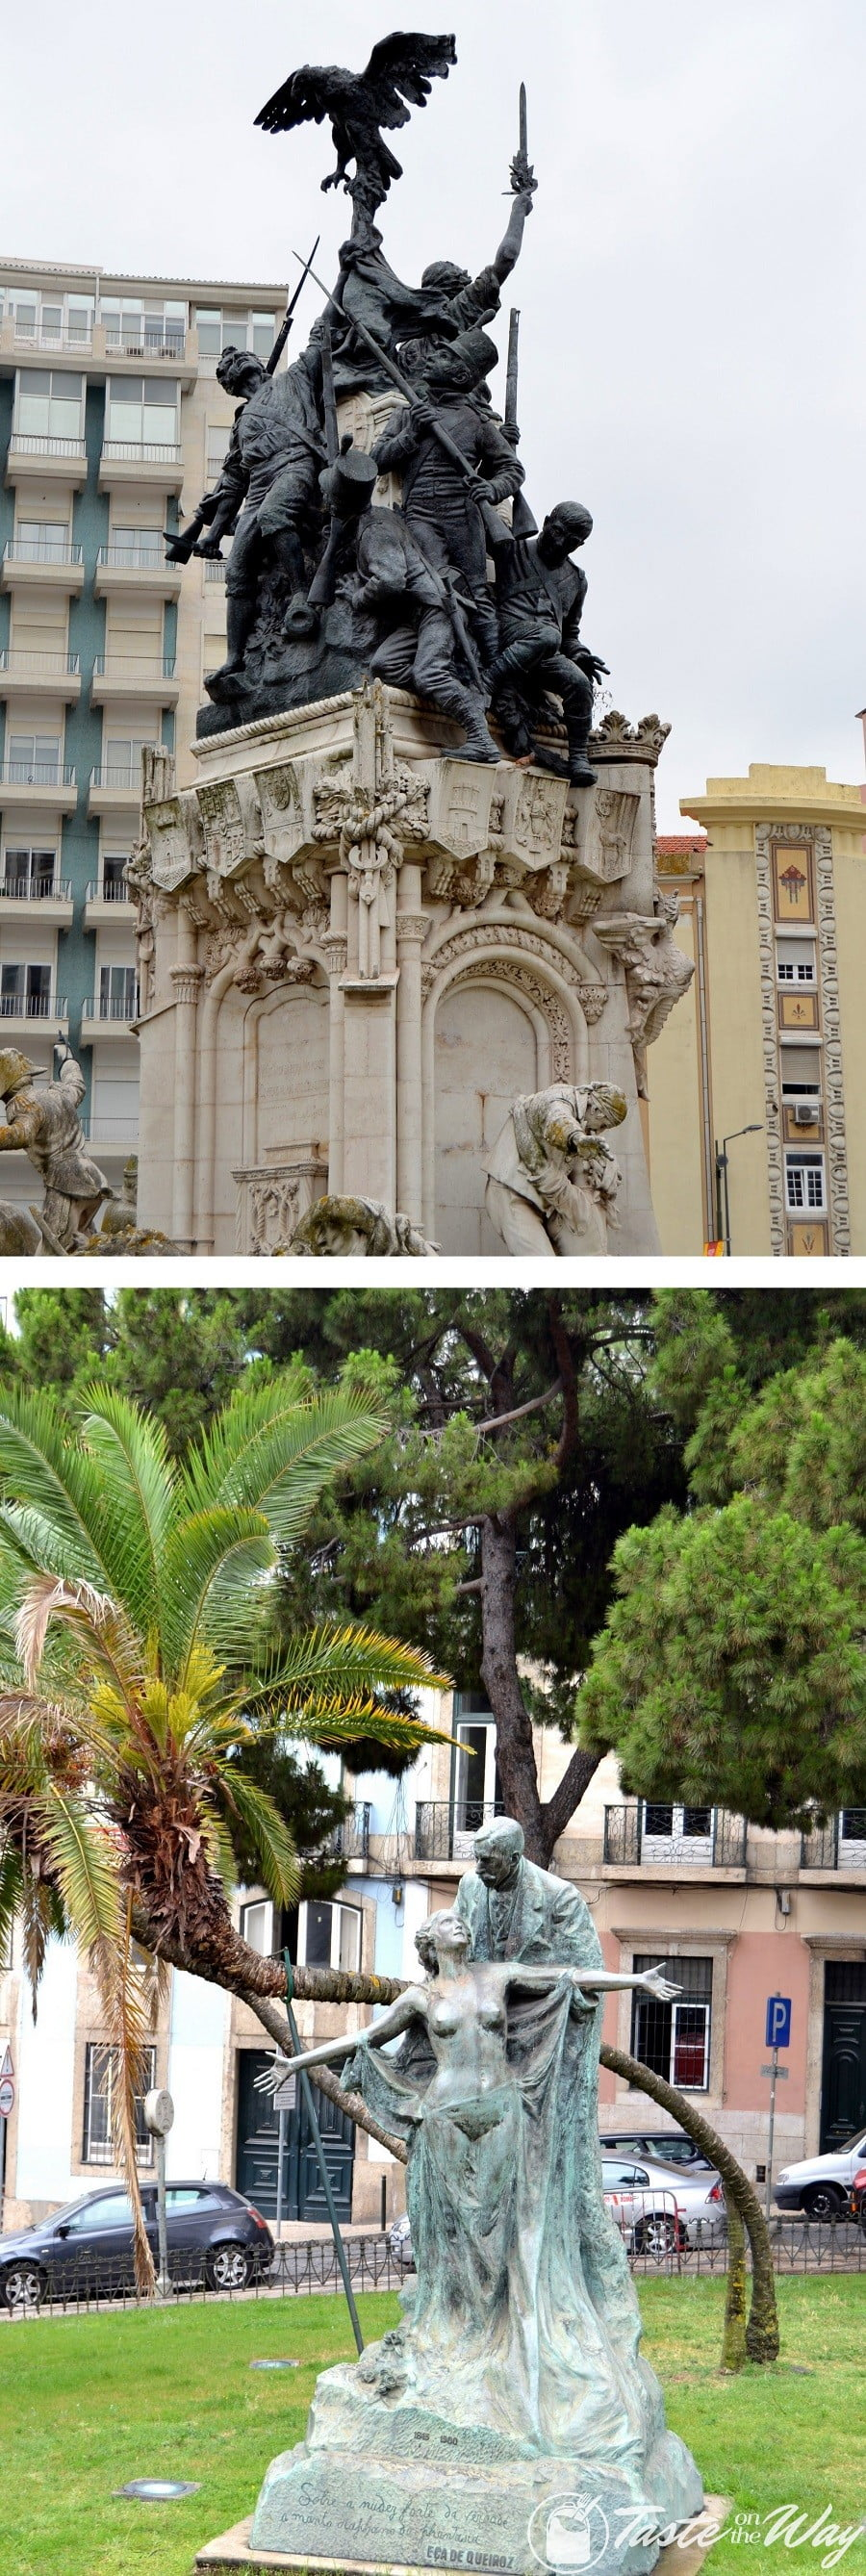 One of the top fun #thingstodo in #Lisbon, #Portugal is finding the most elaborate statues in the city. Check out for more! #travel #photography @tasteontheway